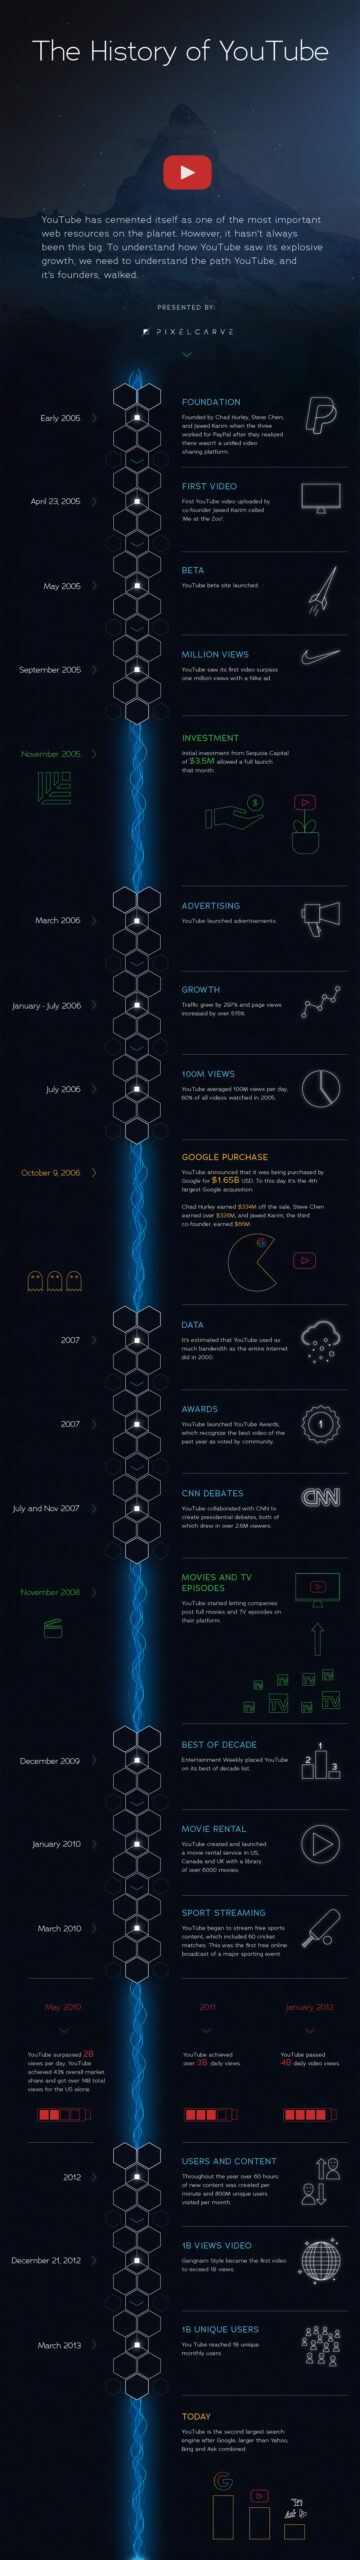 History of YouTube Infographic by Pixelcarve